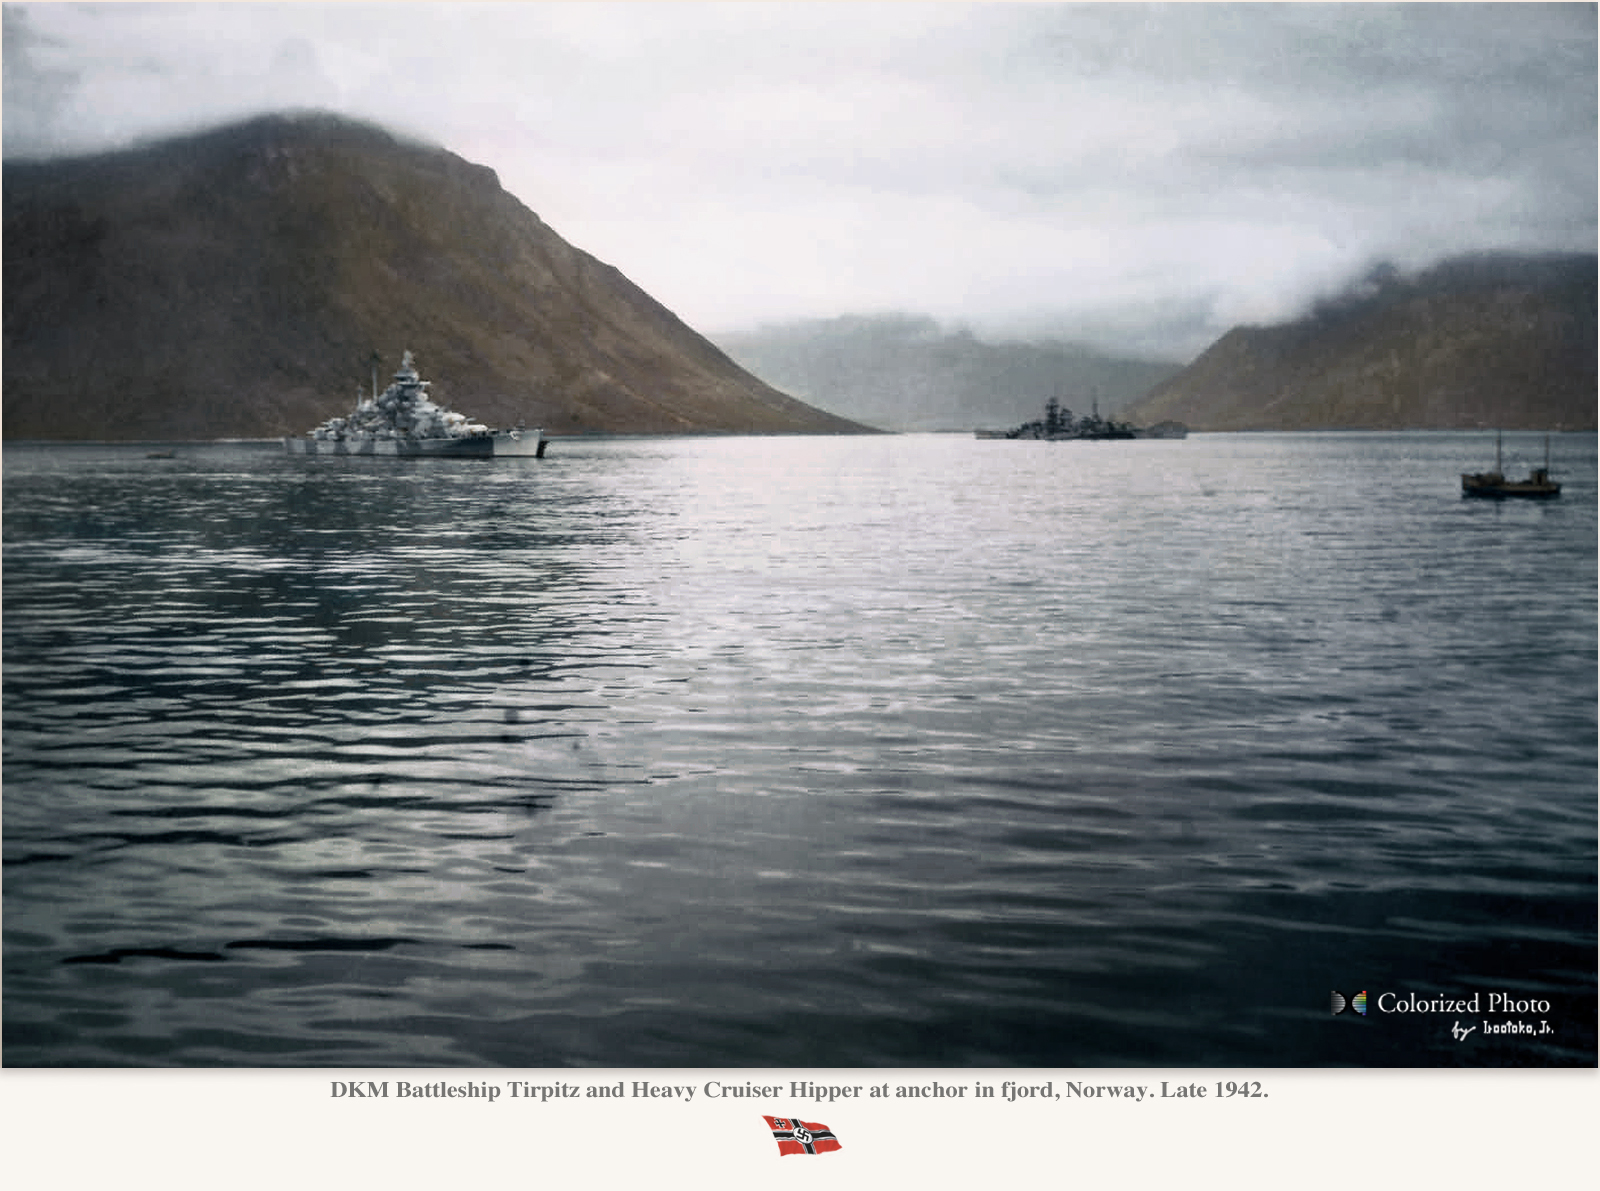 Tirpitz and Hipper in Norway, late 1942